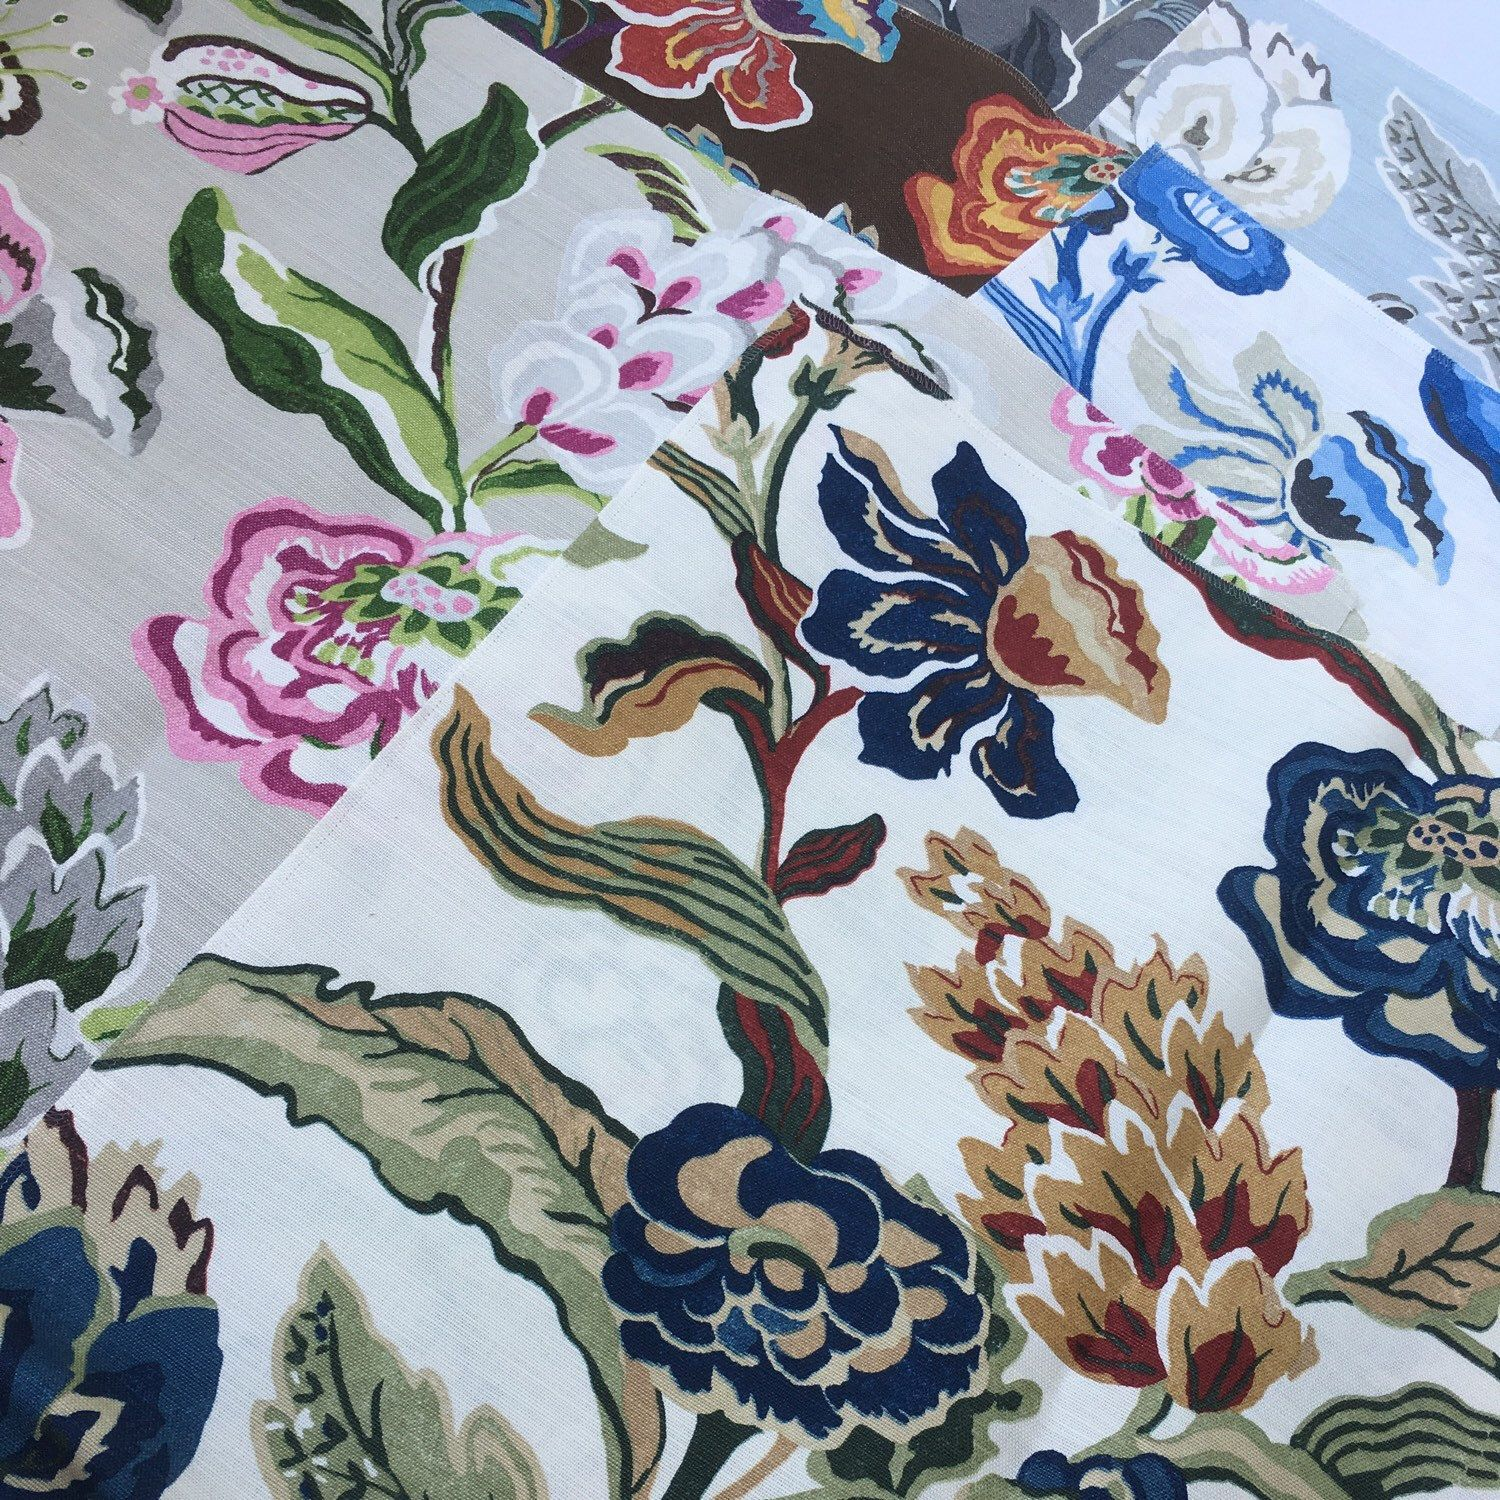 Weave medley light green fabric 6 yards contemporary drapery fabric - Chinoiserie Floral Fabric Thibaut Fabric Navesink Cream And Navy Grey Grey And Pink Mocha Blue And